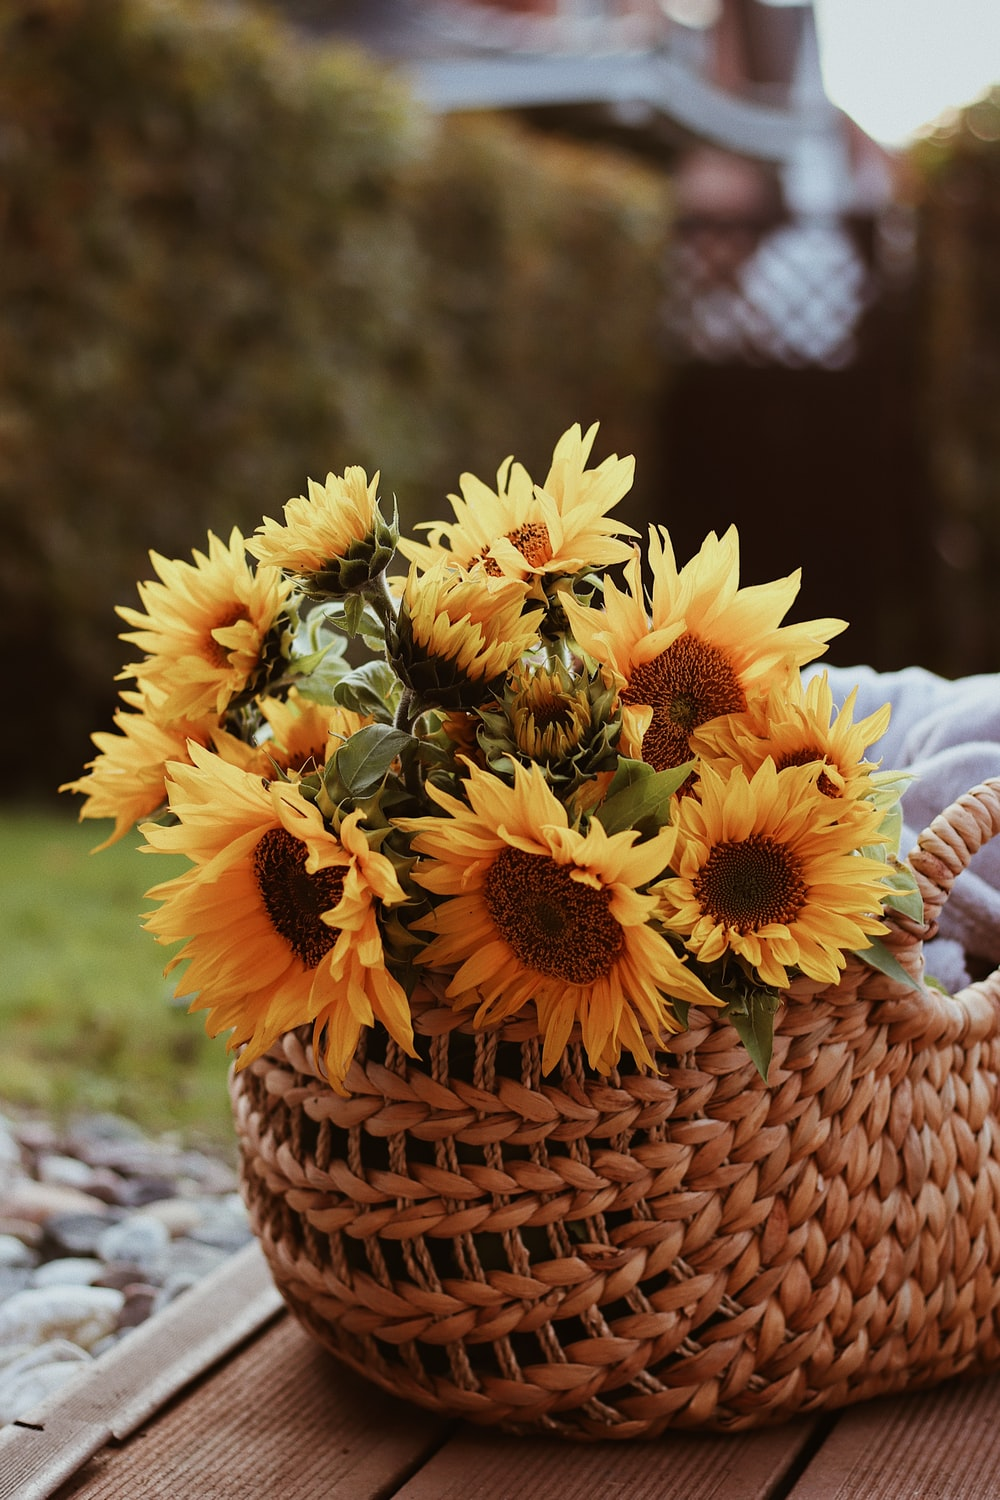 yellow sunflower in brown woven basket